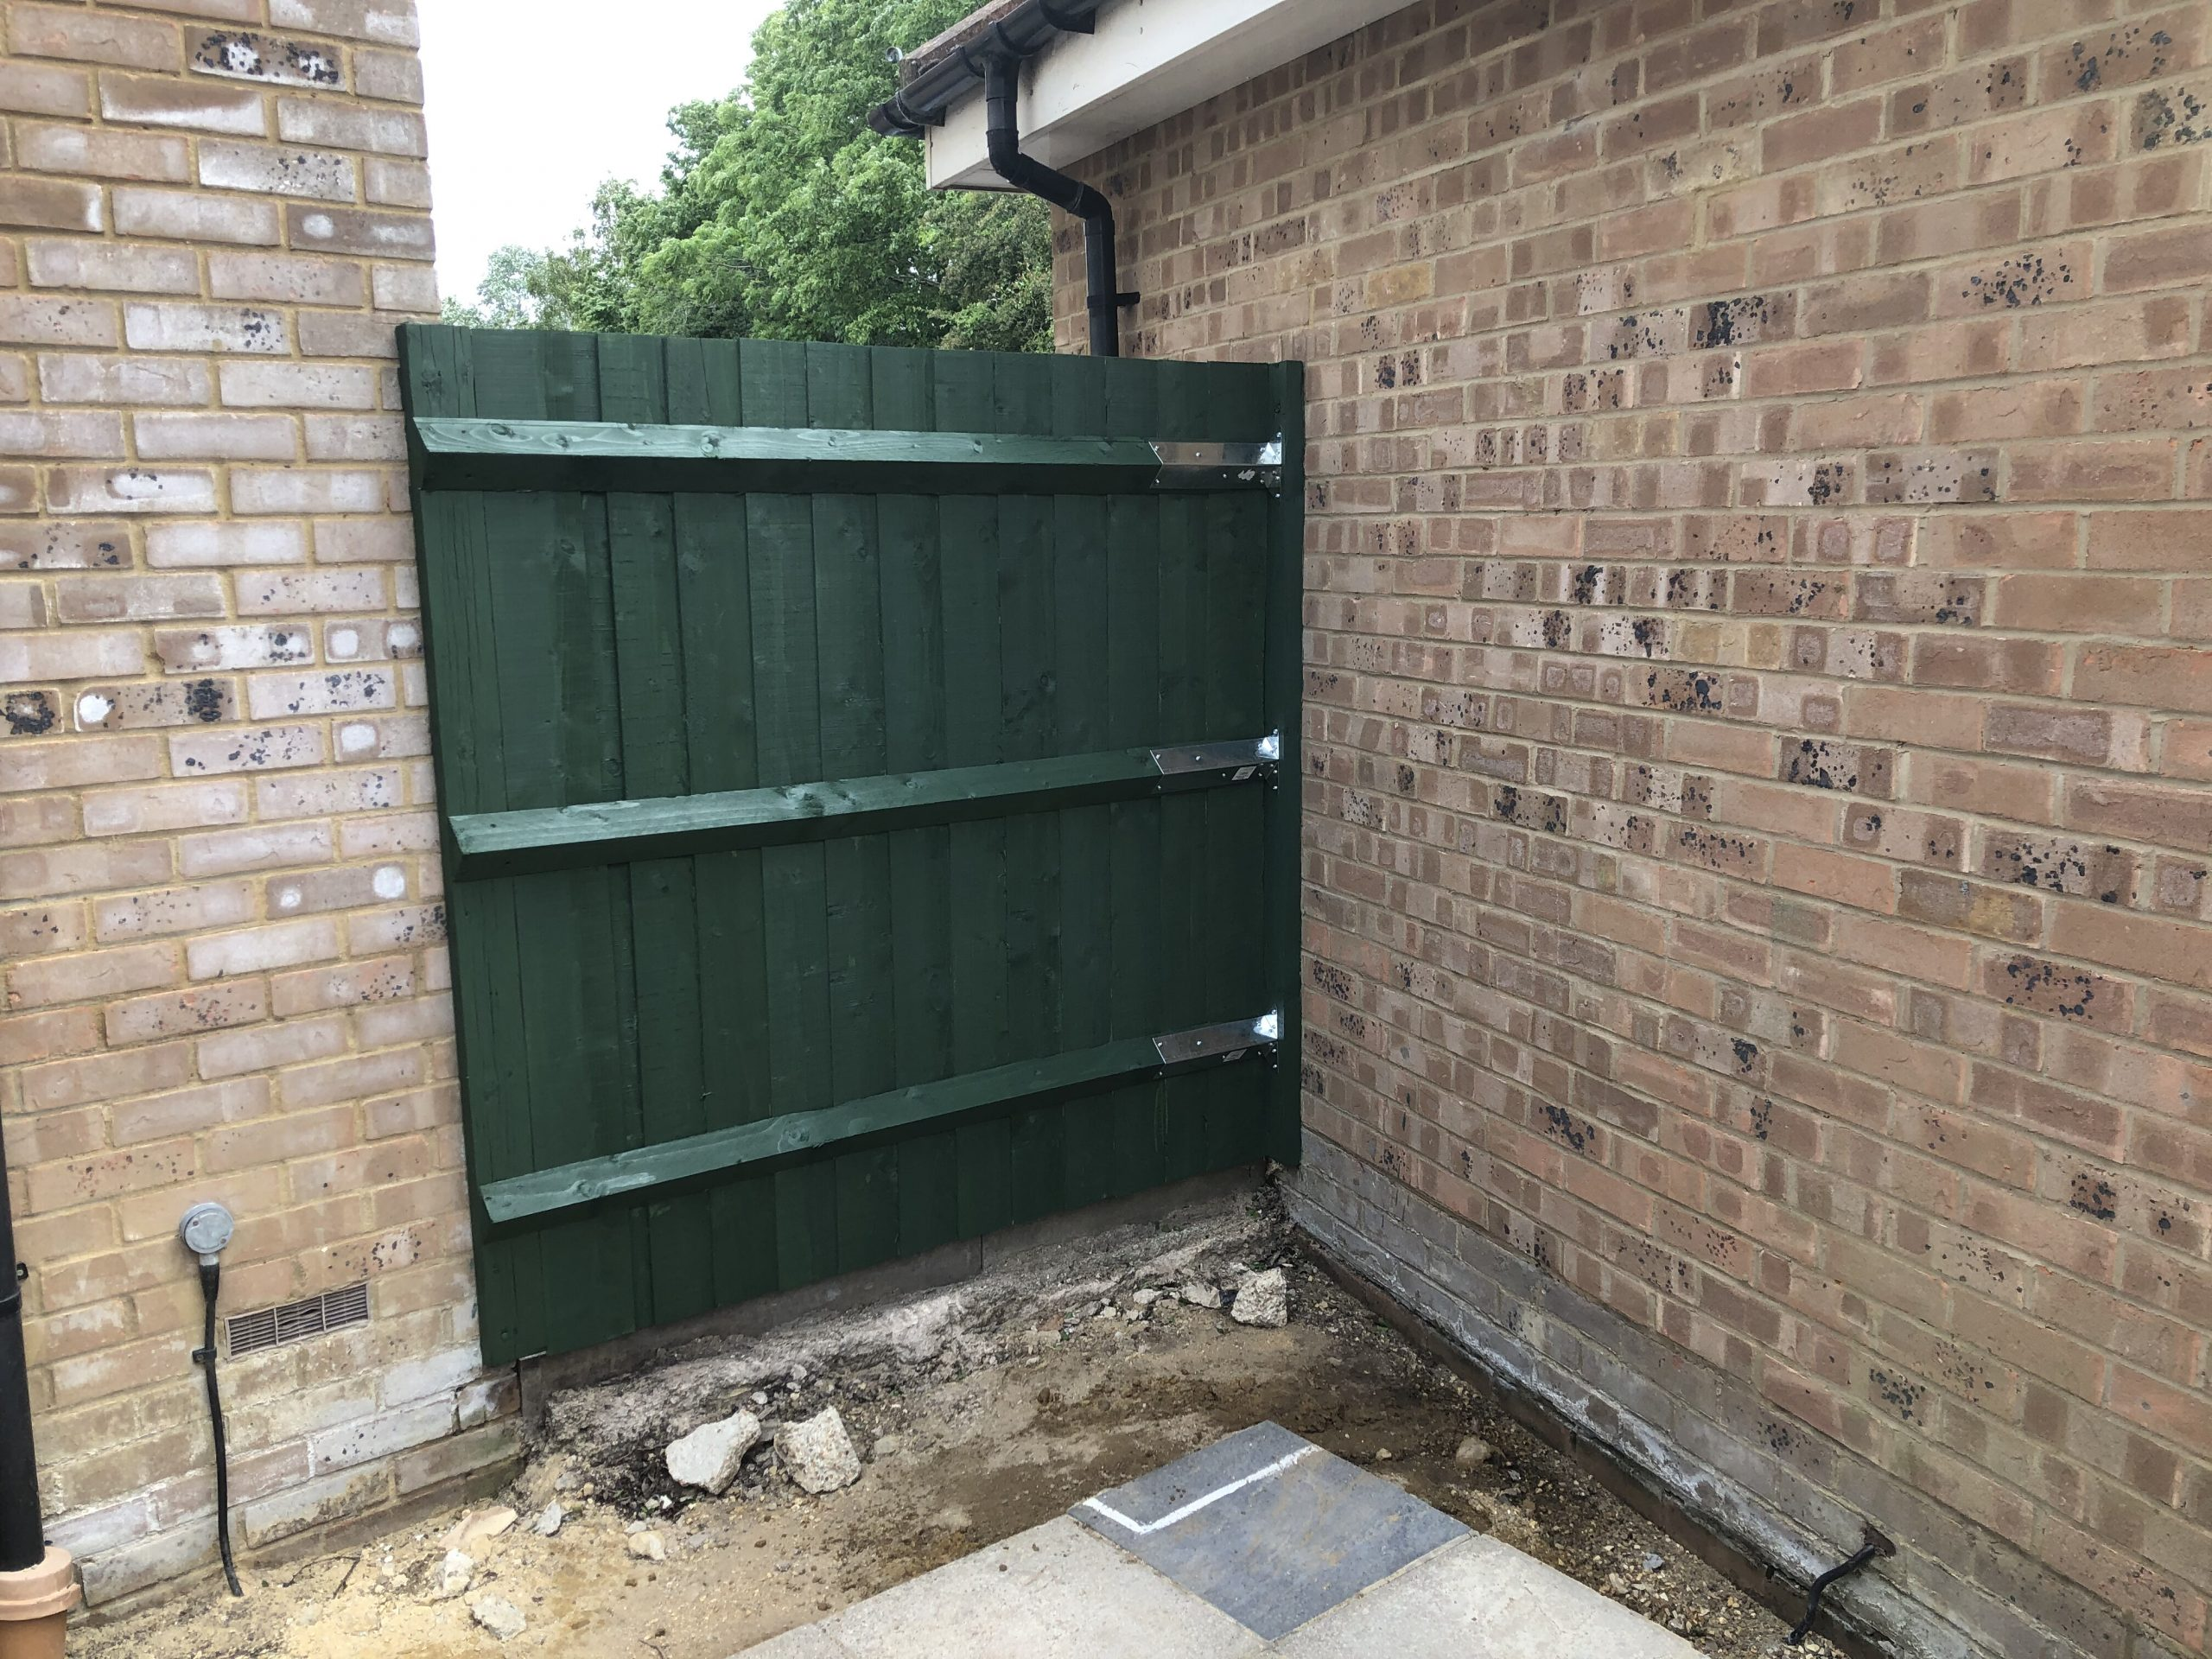 The new small fence